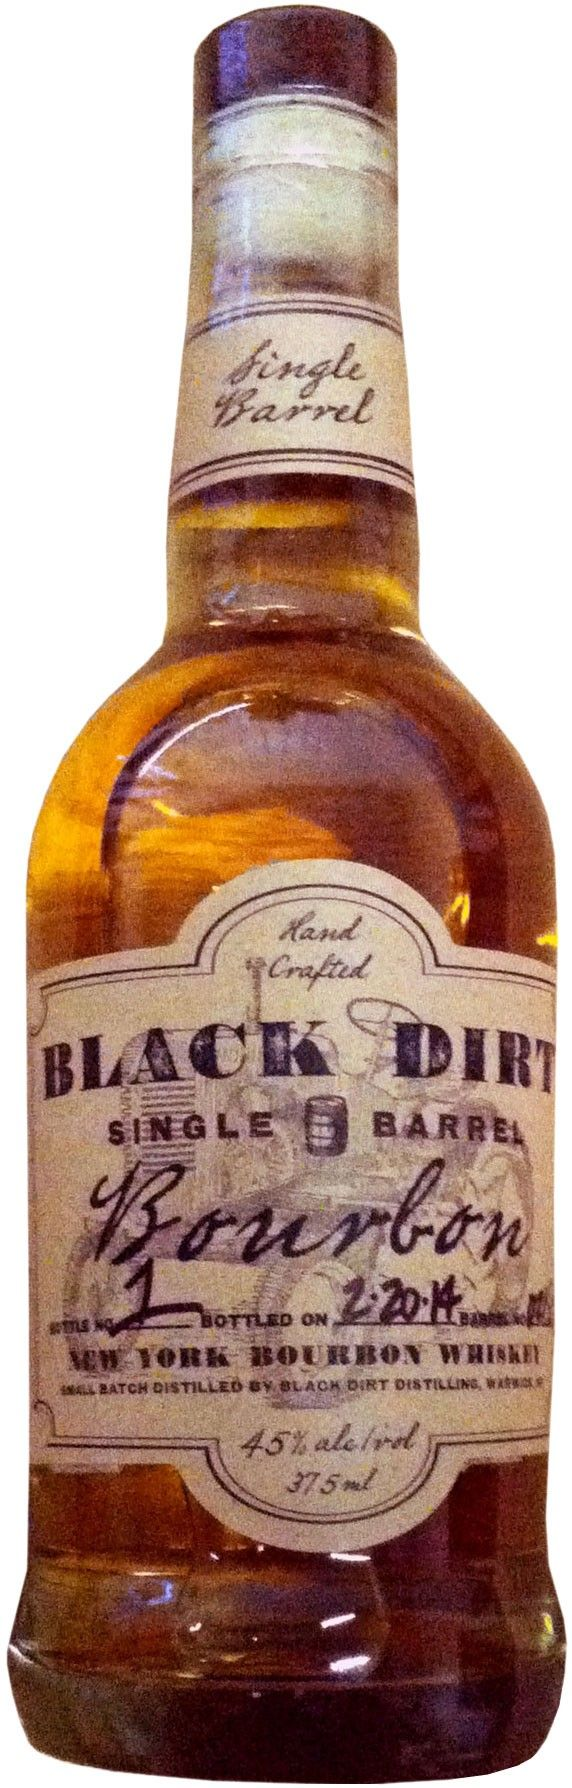 Aged for over two years, this single barrel bourbon is made from Black Dirt corn in upstate New York.